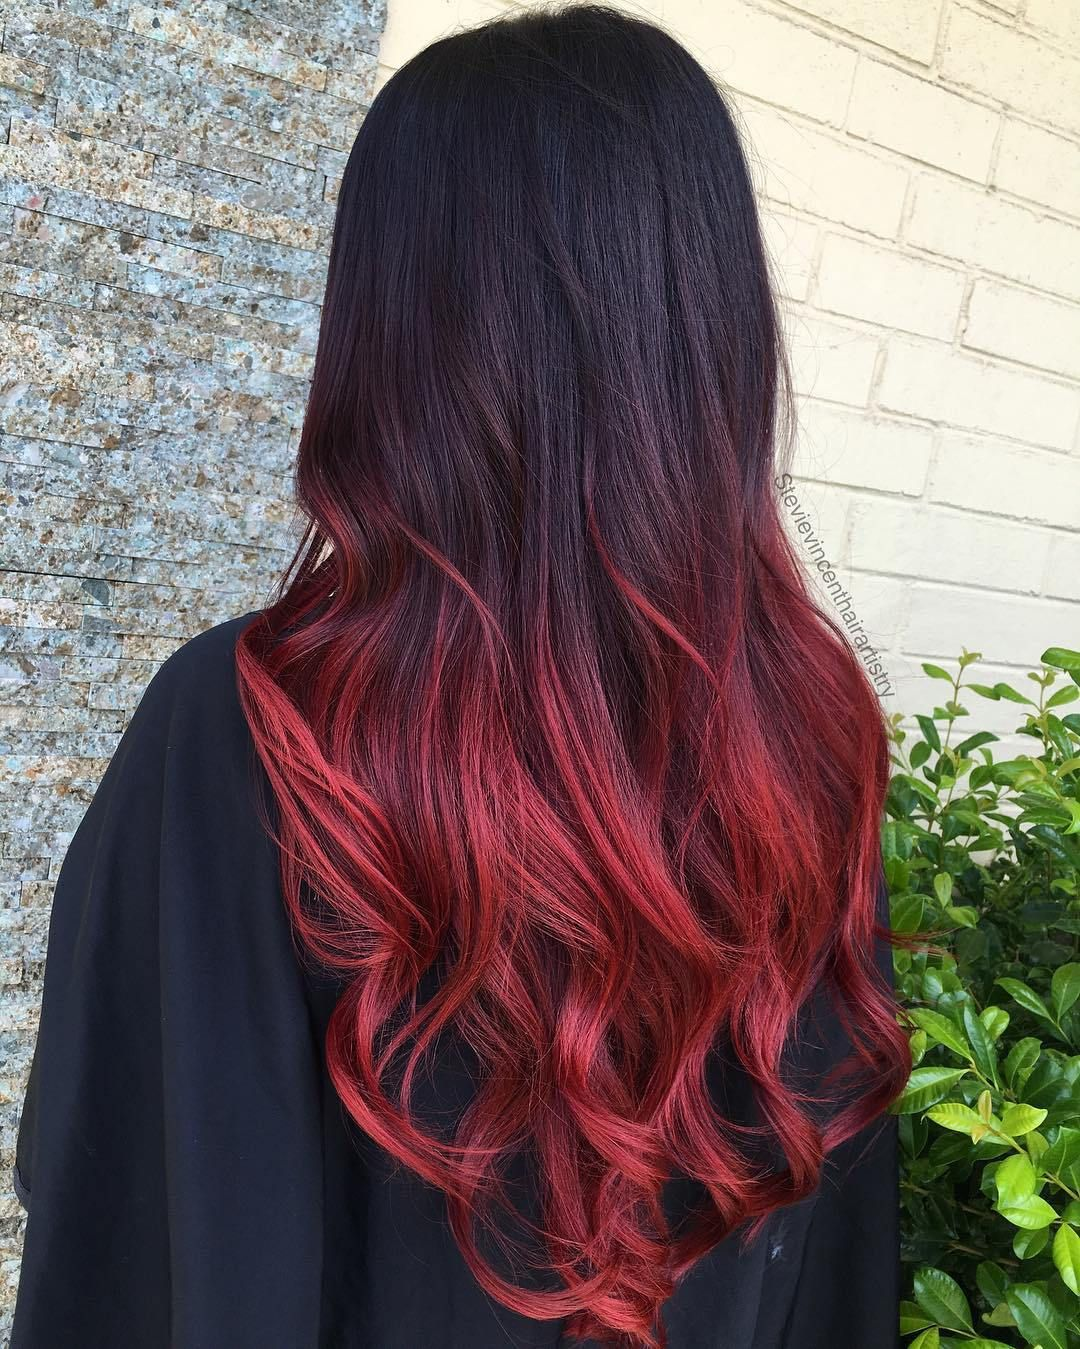 60 Best Ombre Hair Color Ideas For Blond Brown Red And Black Hair Black Hair Red Ombre Hair Color For Black Hair Best Ombre Hair